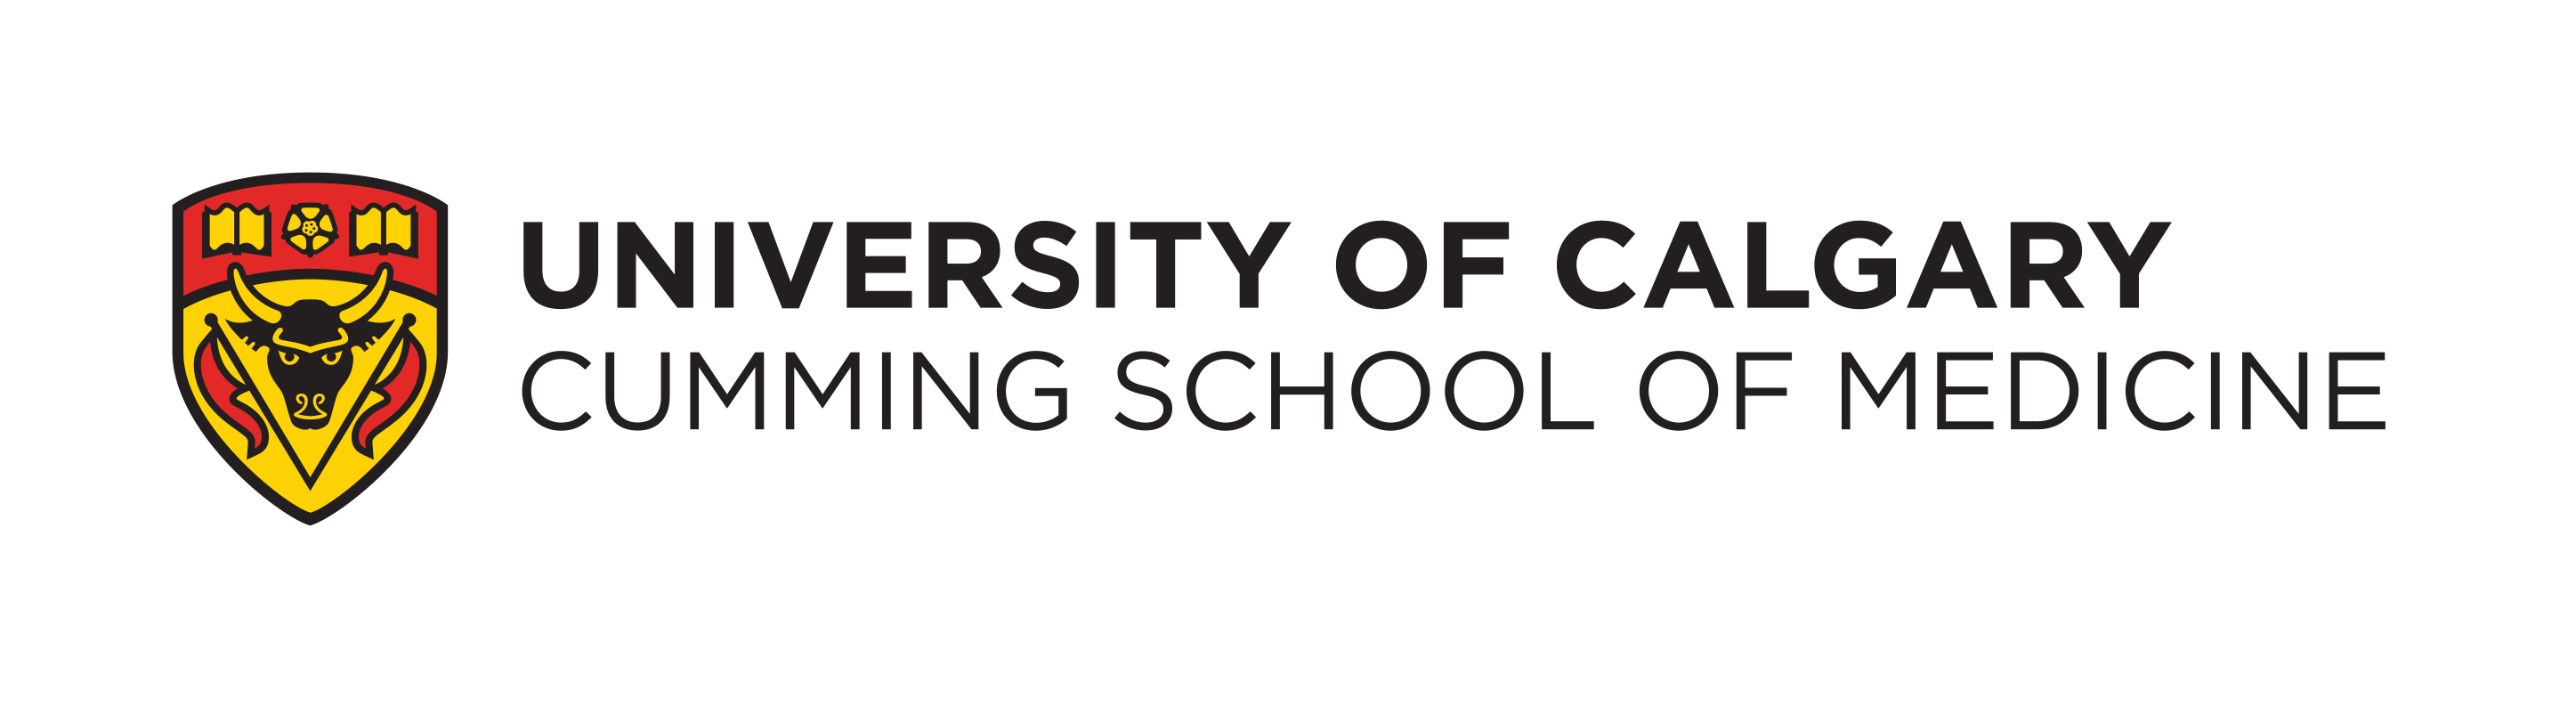 CUMMING SCHOOL OF MEDICINE / ALBERTA HEALTH SERVICES